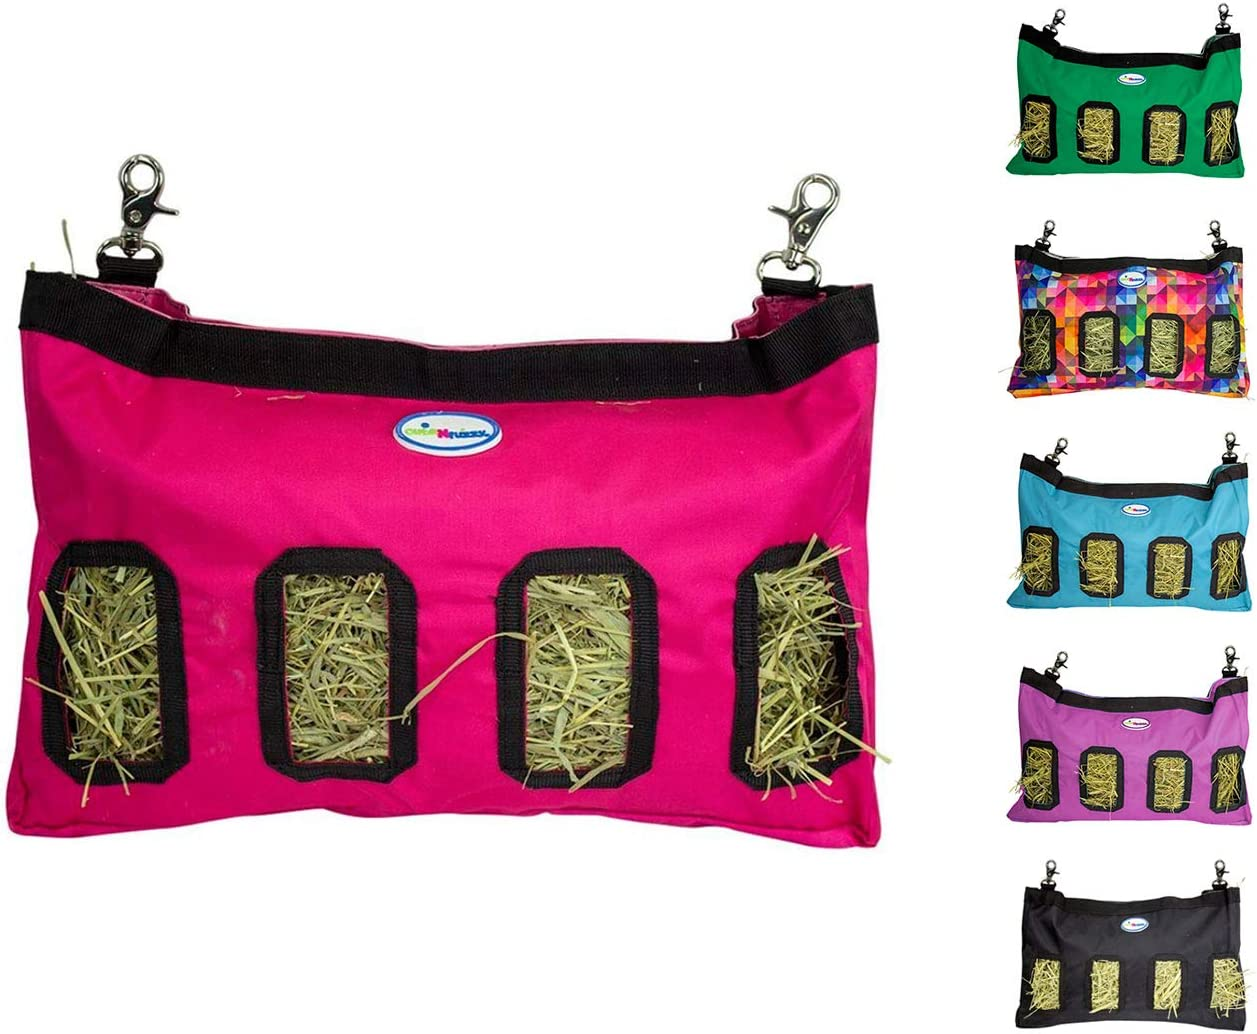 CuteNfuzzy Small Animal 1000D Nylon Hay Pouch Feeder Bags for Guinea Pigs and Rabbits - Available in Multiple Colors & Sizes